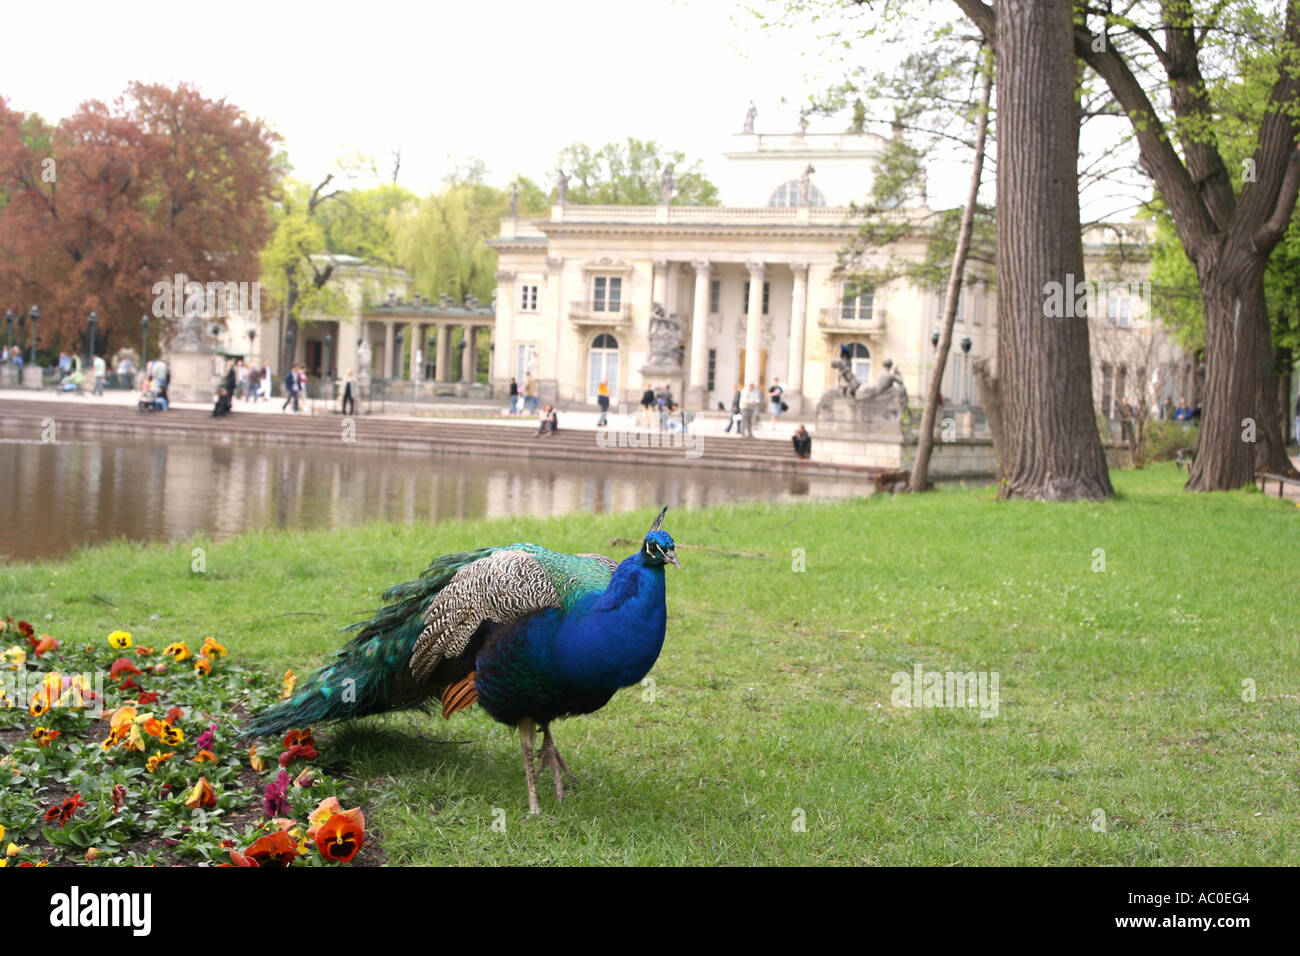 A Peacock In Royal Lazienki Park In Warsaw Poland Stock